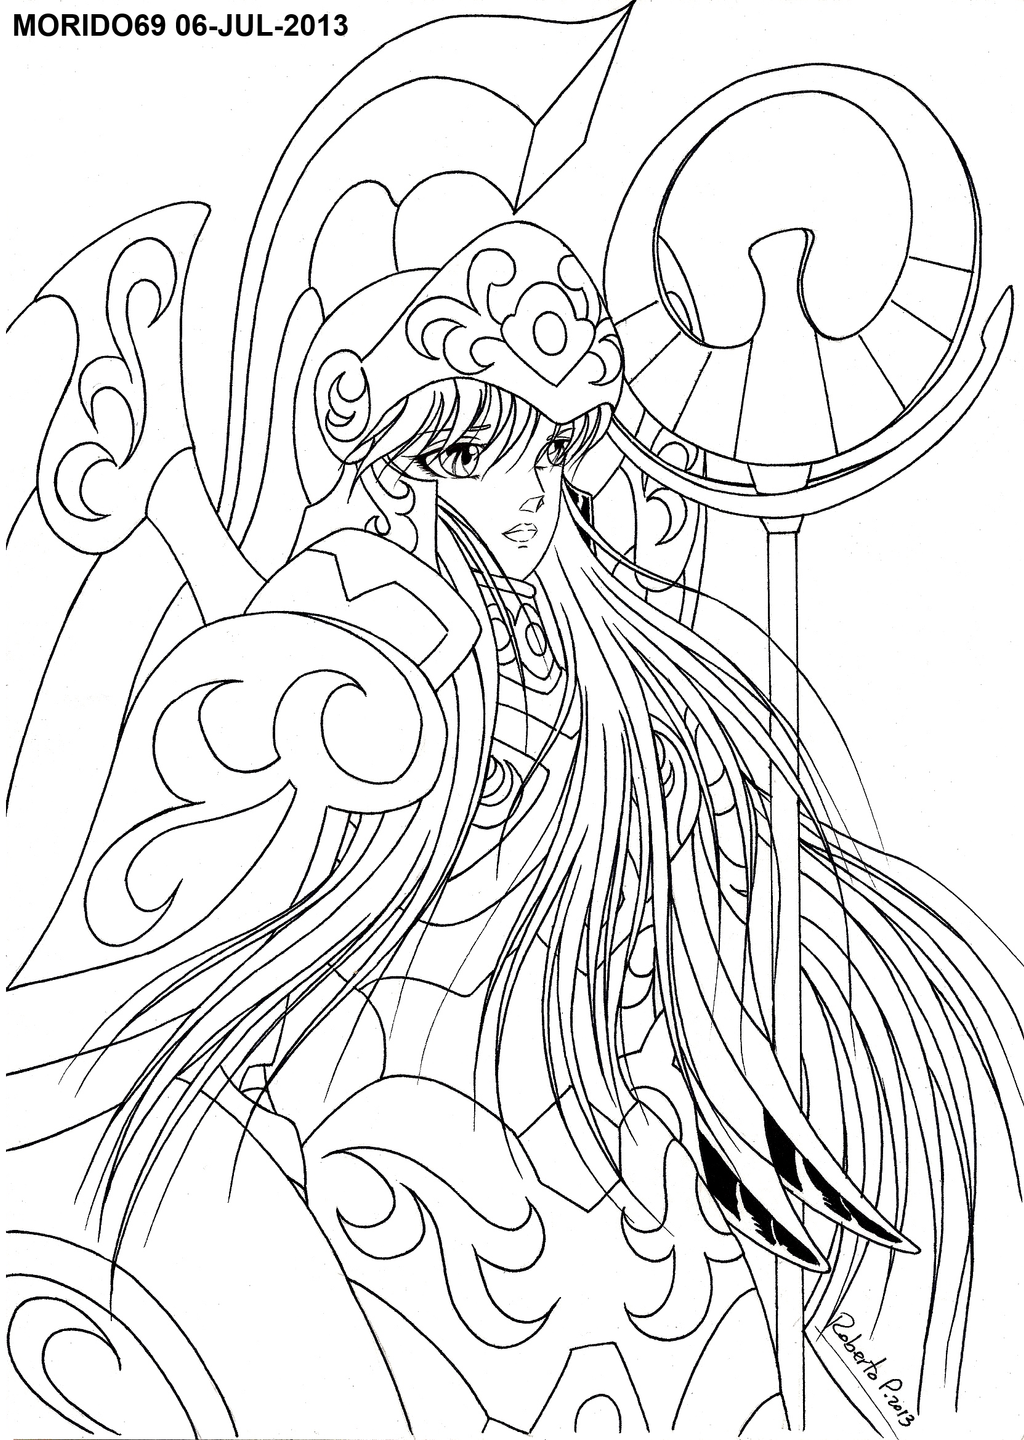 Dorable Saint Seiya Coloring Pages Motif - Examples Professional ...